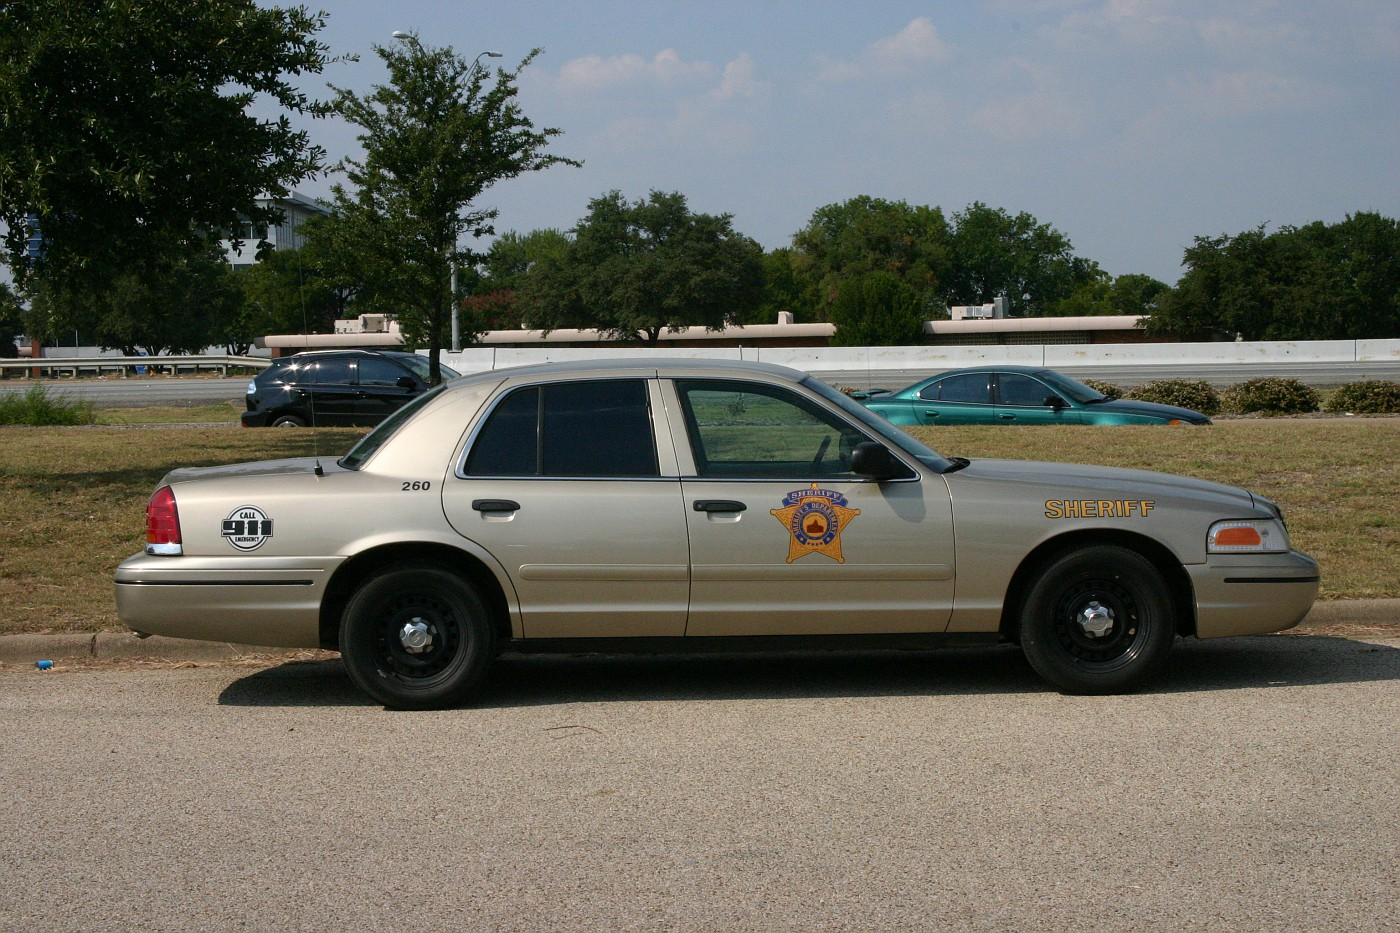 Dallas County Sheriff